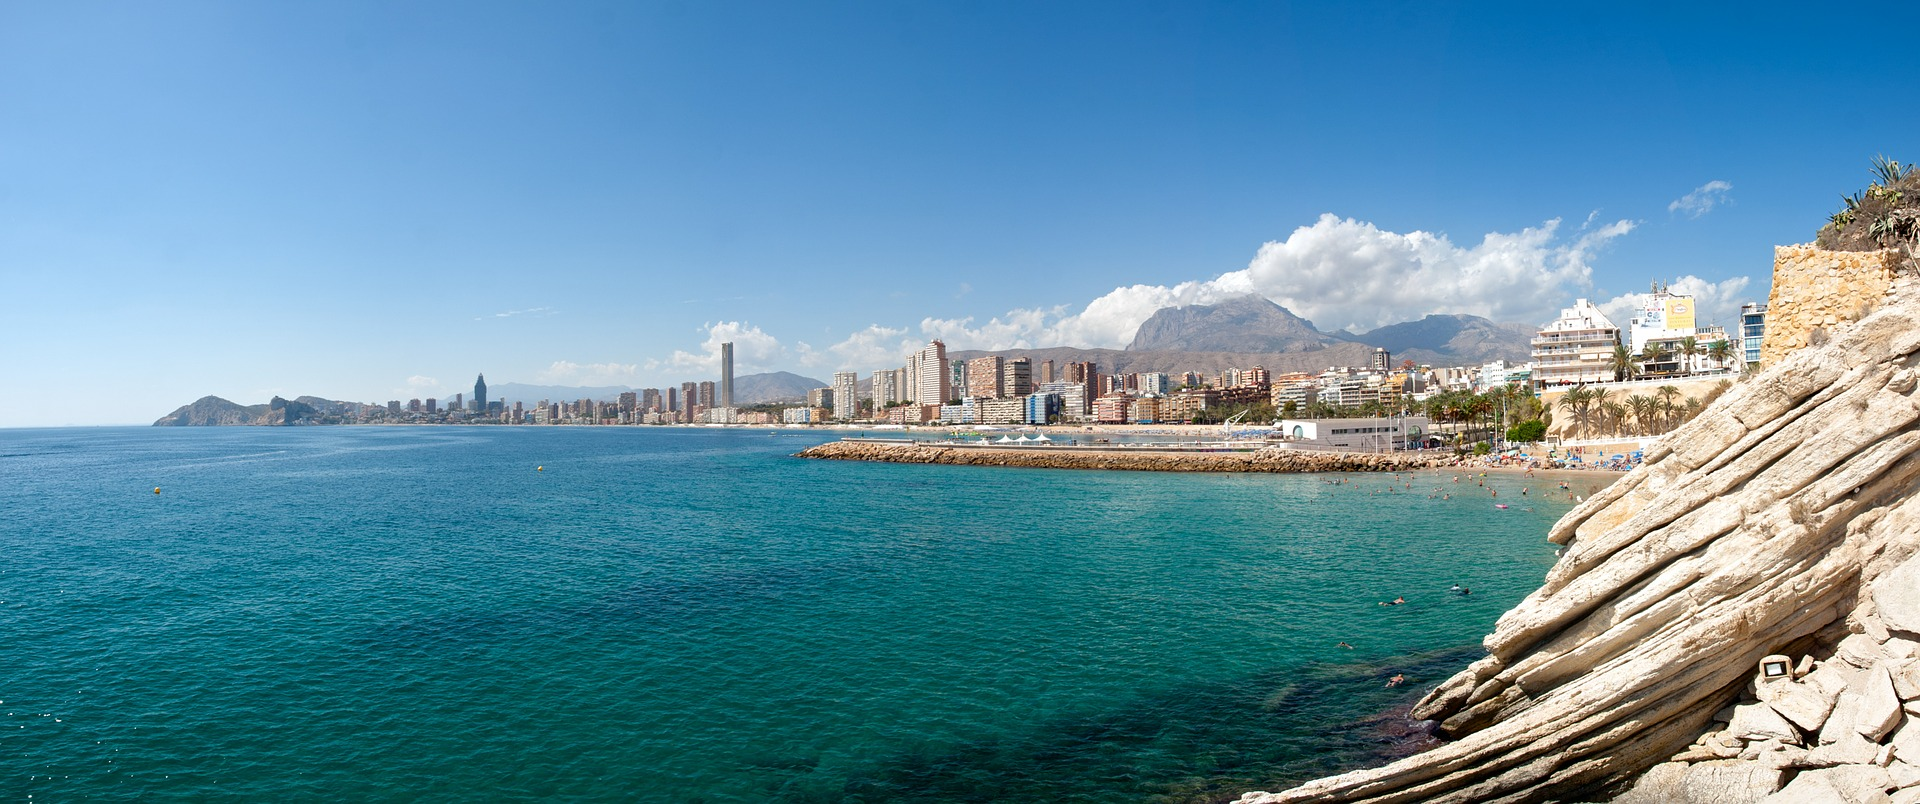 5 best things to do in Alicante on a budget